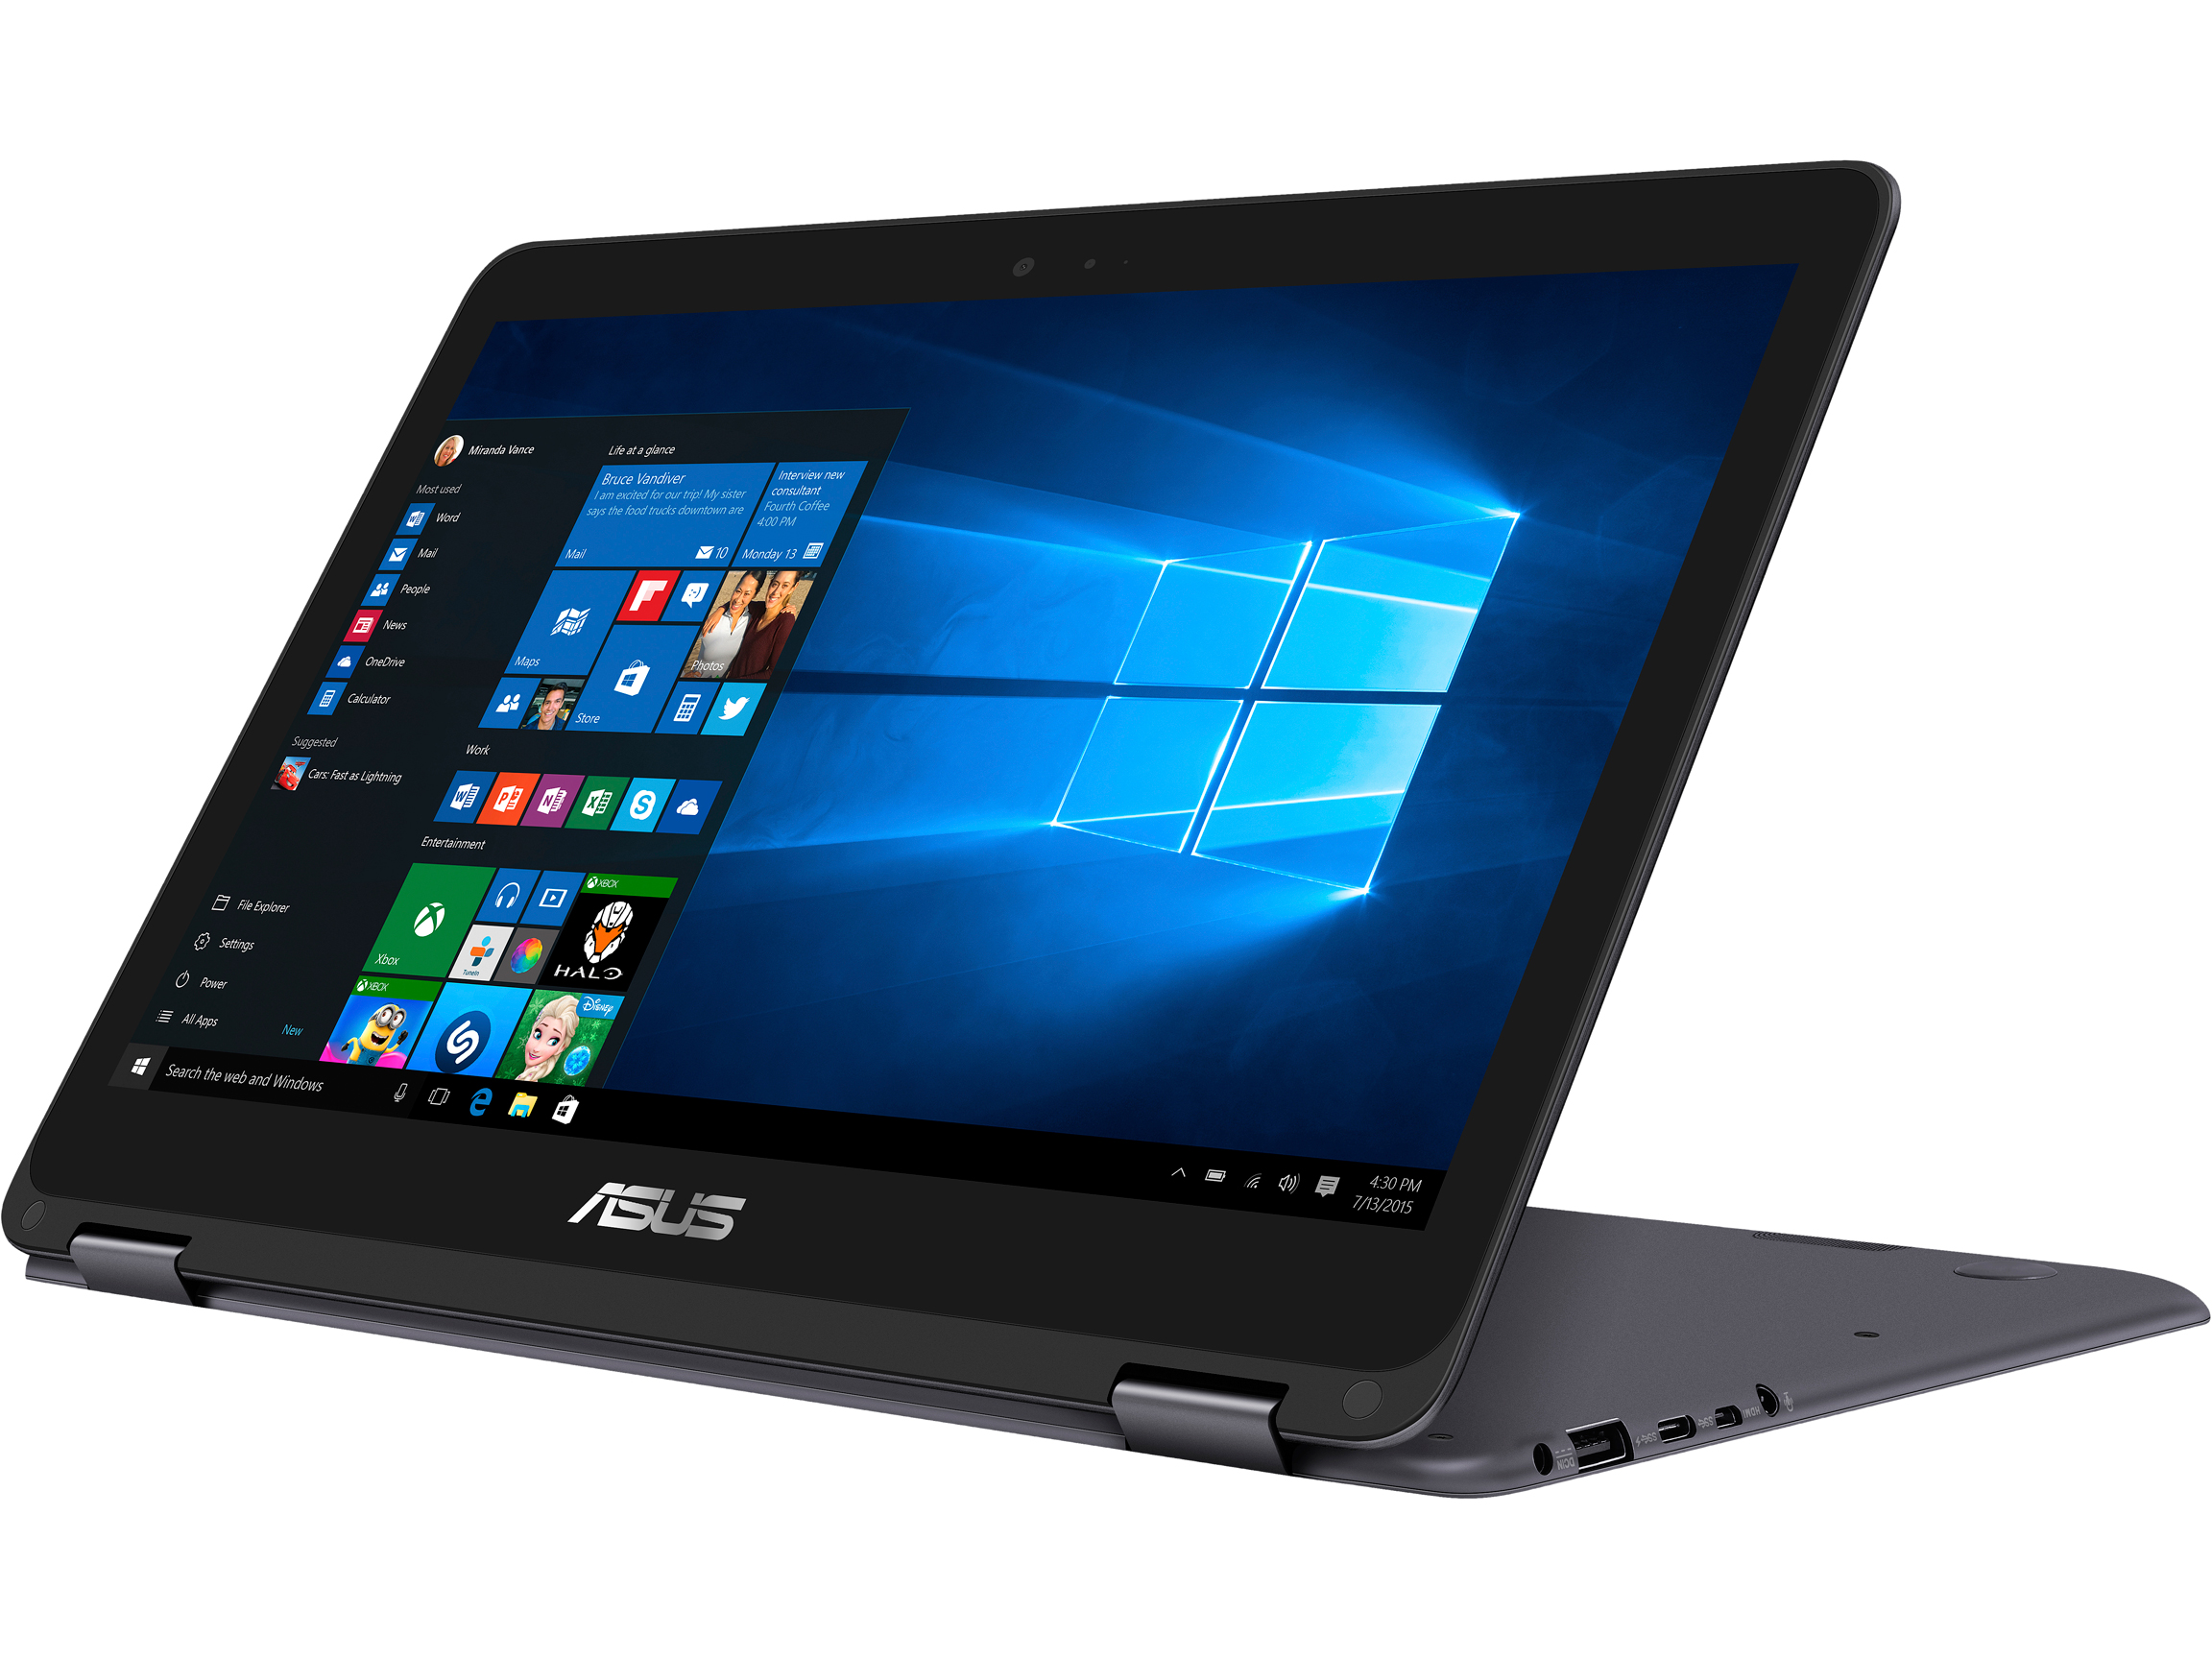 "Asus ZenBook Flip 13.3"" FHD Intel Core m3 Convertible Laptop"